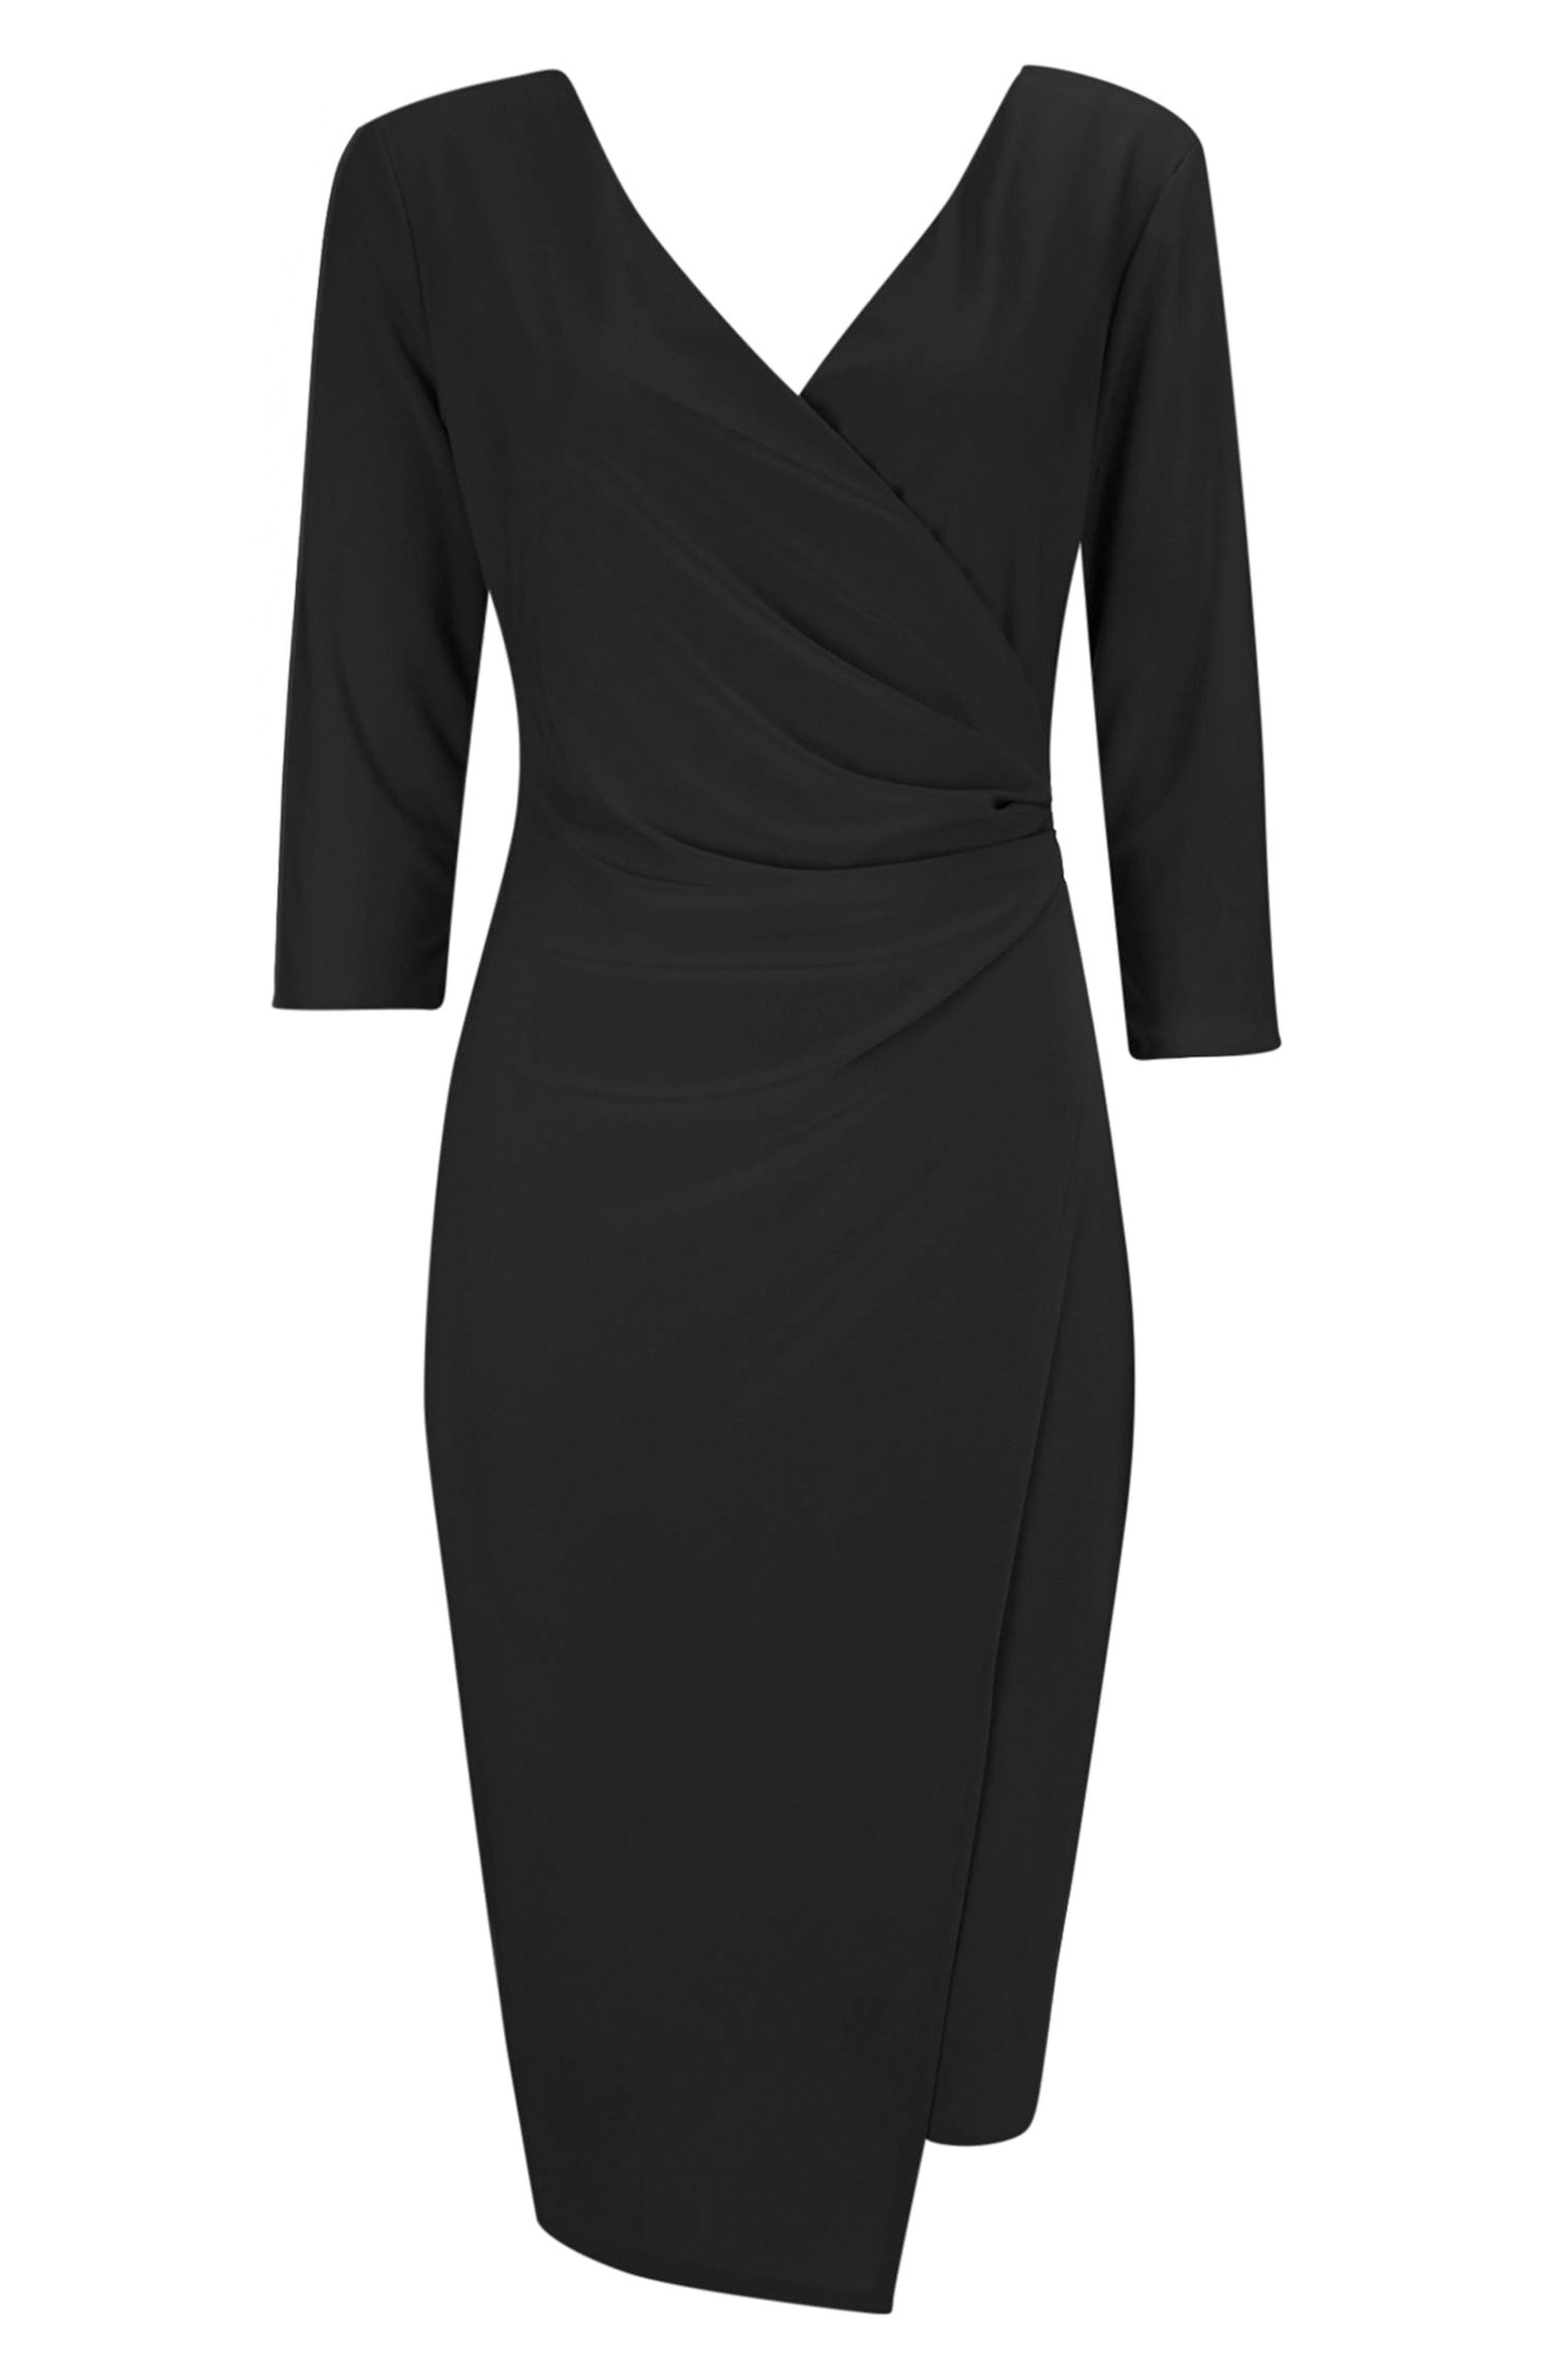 Ity Wrap Dress,                             Alternate thumbnail 4, color,                             001